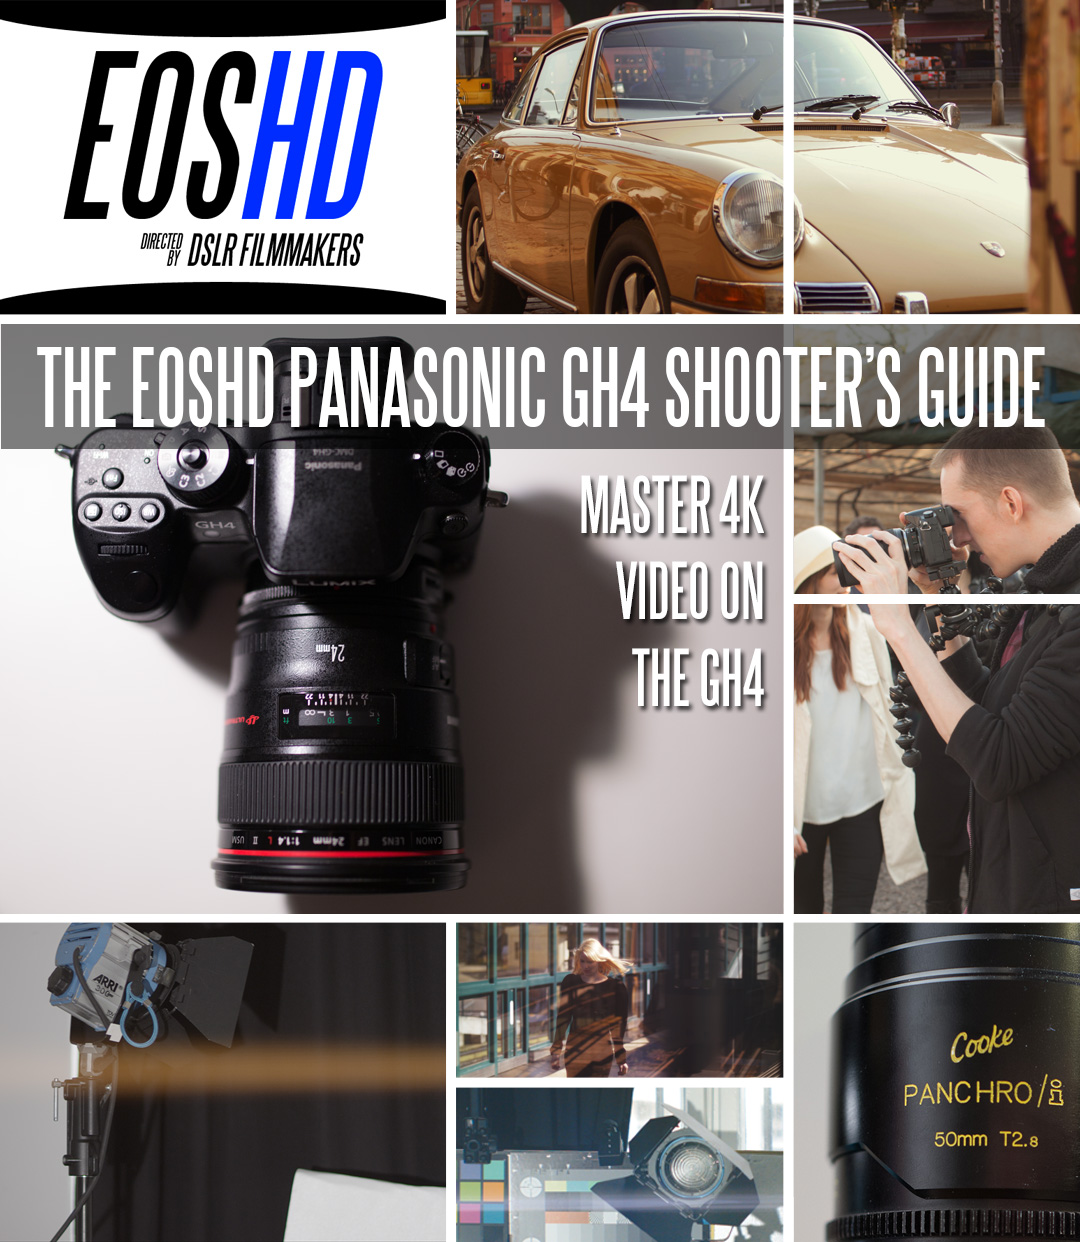 The EOSHD GH4 Shooter's Guide